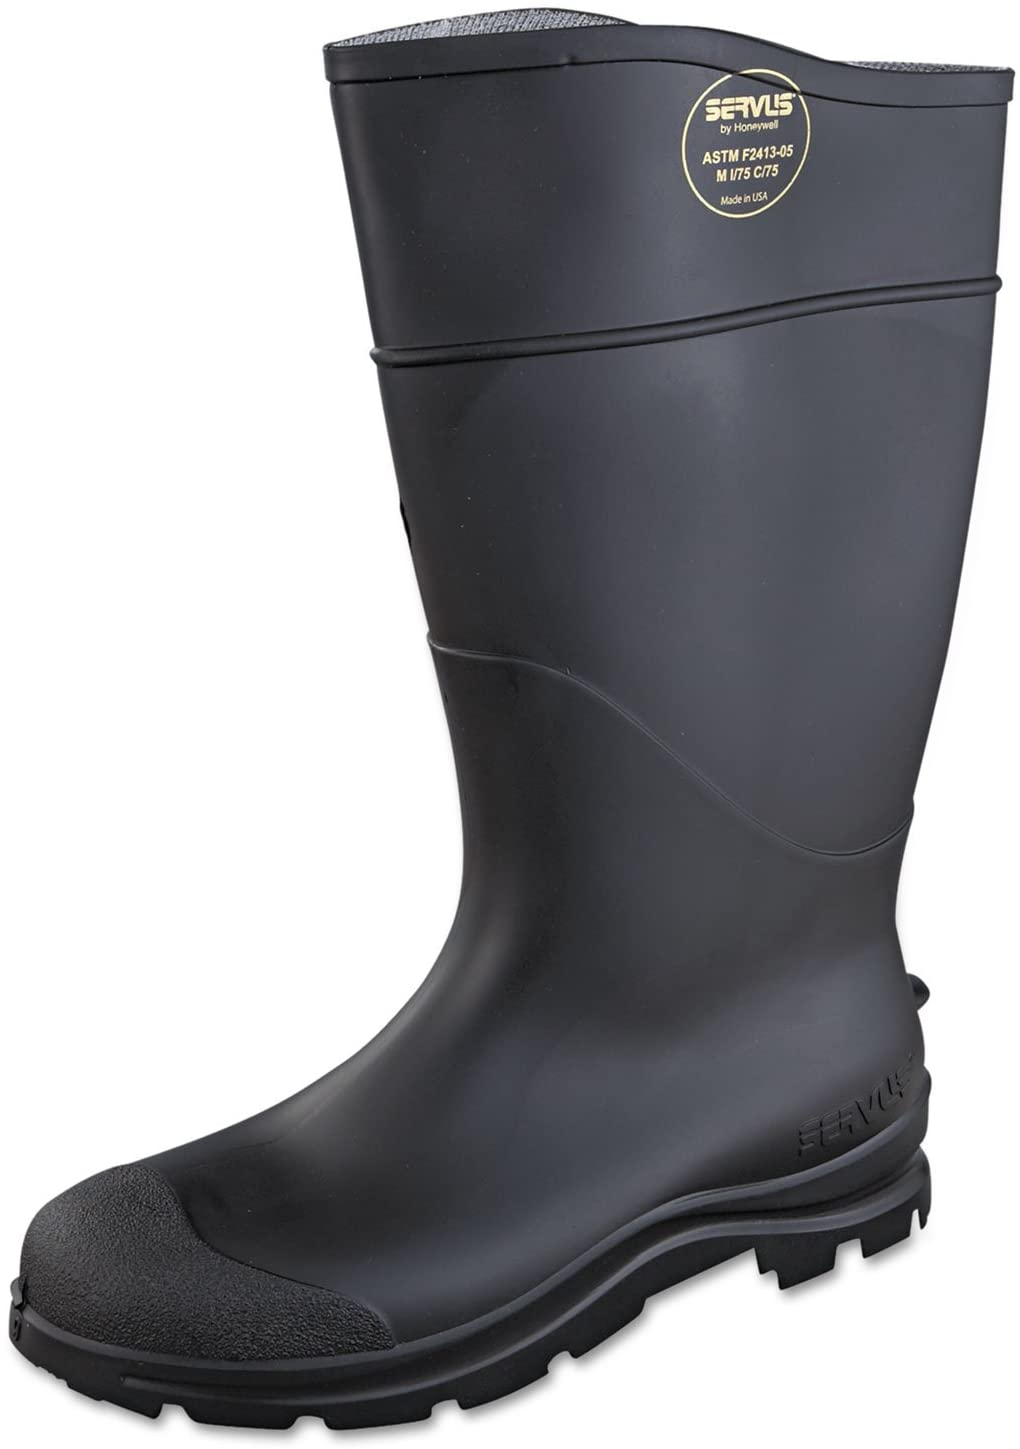 SVS188219 - Honeywell CT Safety Knee Boot with Steel Toe